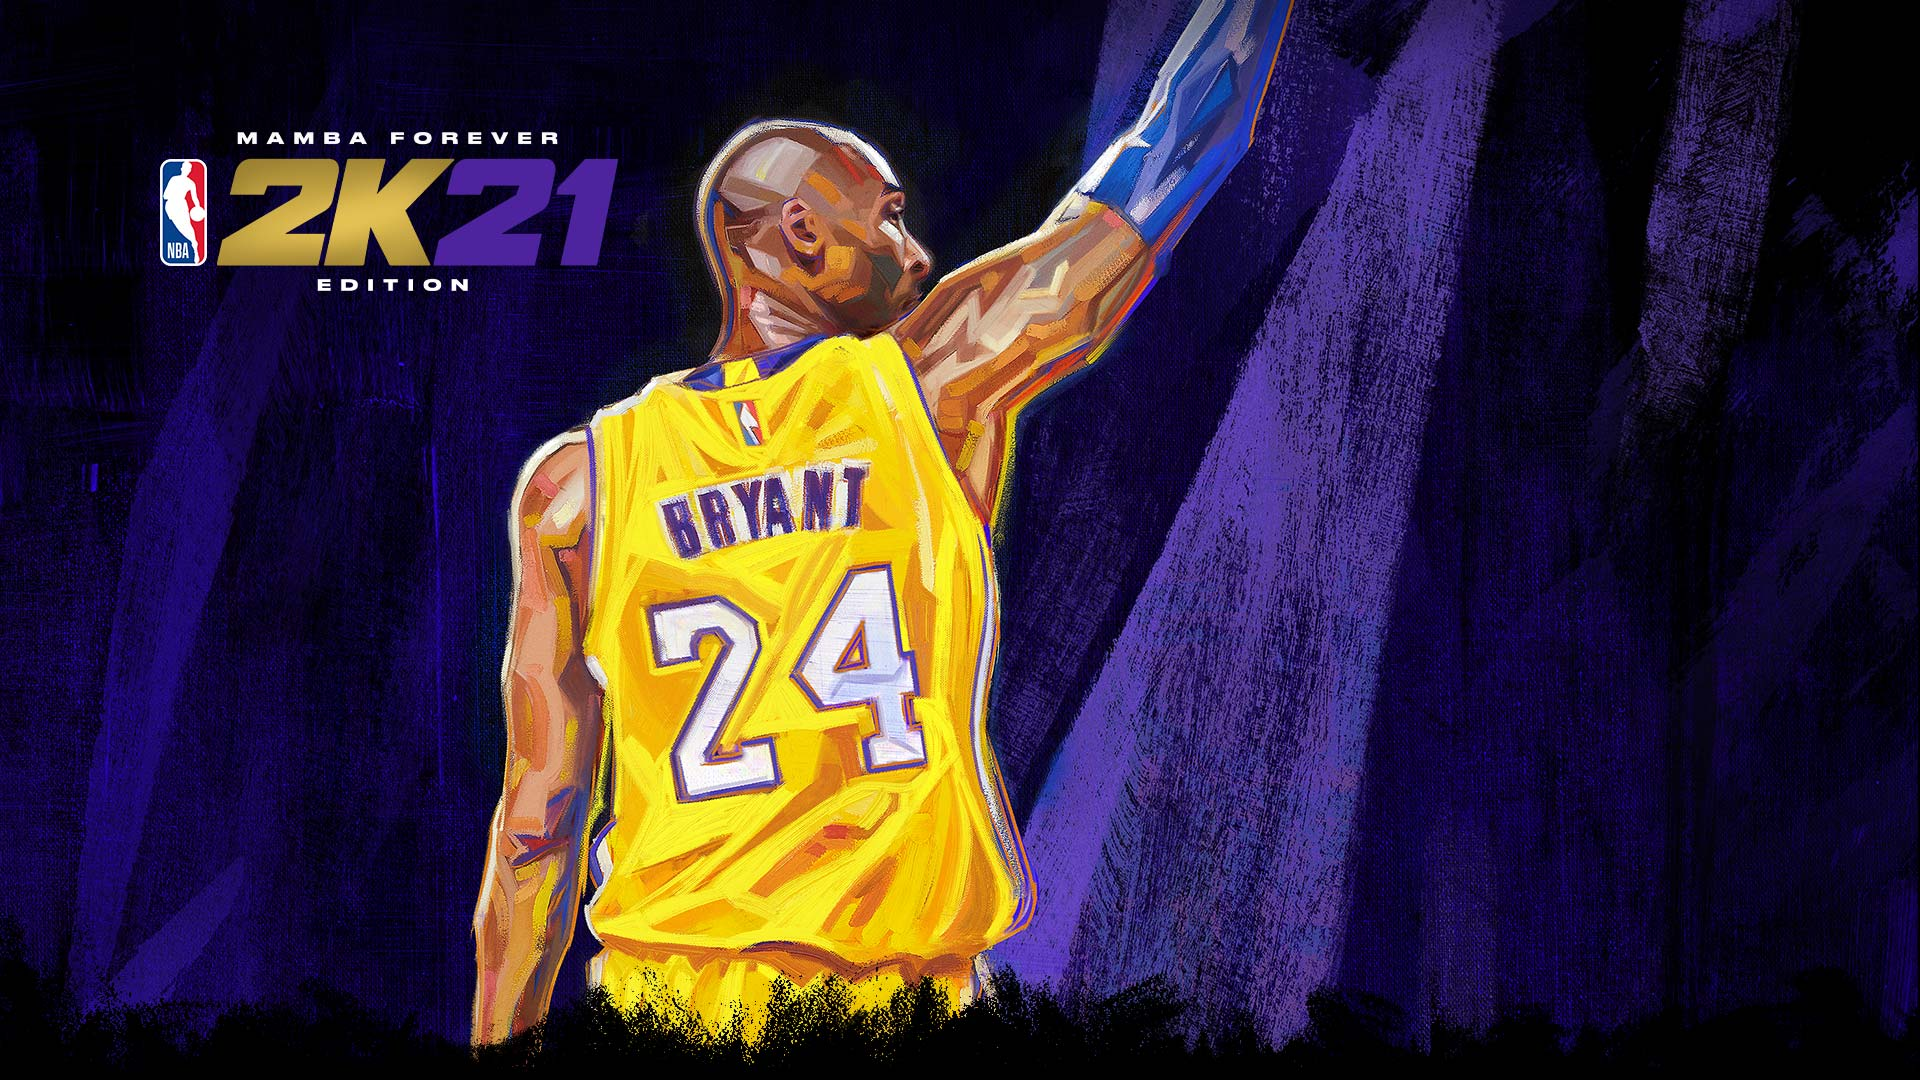 Mamba Forever, NBA 2K21, A painting of Kobe Bryant in his jersey.